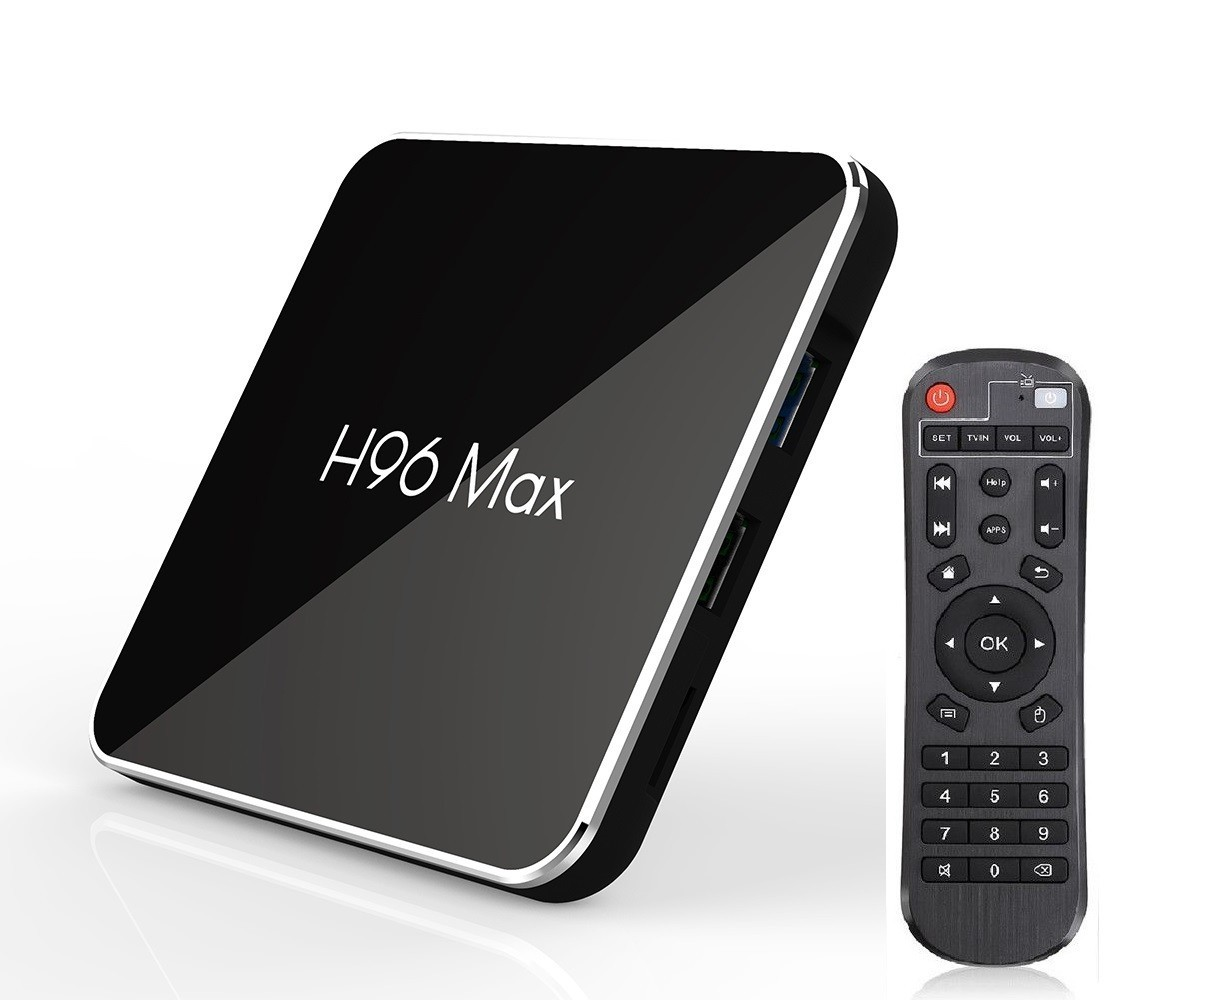 Media player TV Box H96 MAX X2 Android 9, 4GB RAM 64GB ROM WiFi dual band 2.4/5 GHz Mini PC 4K Netflix HBO GO imagine techstar.ro 2021